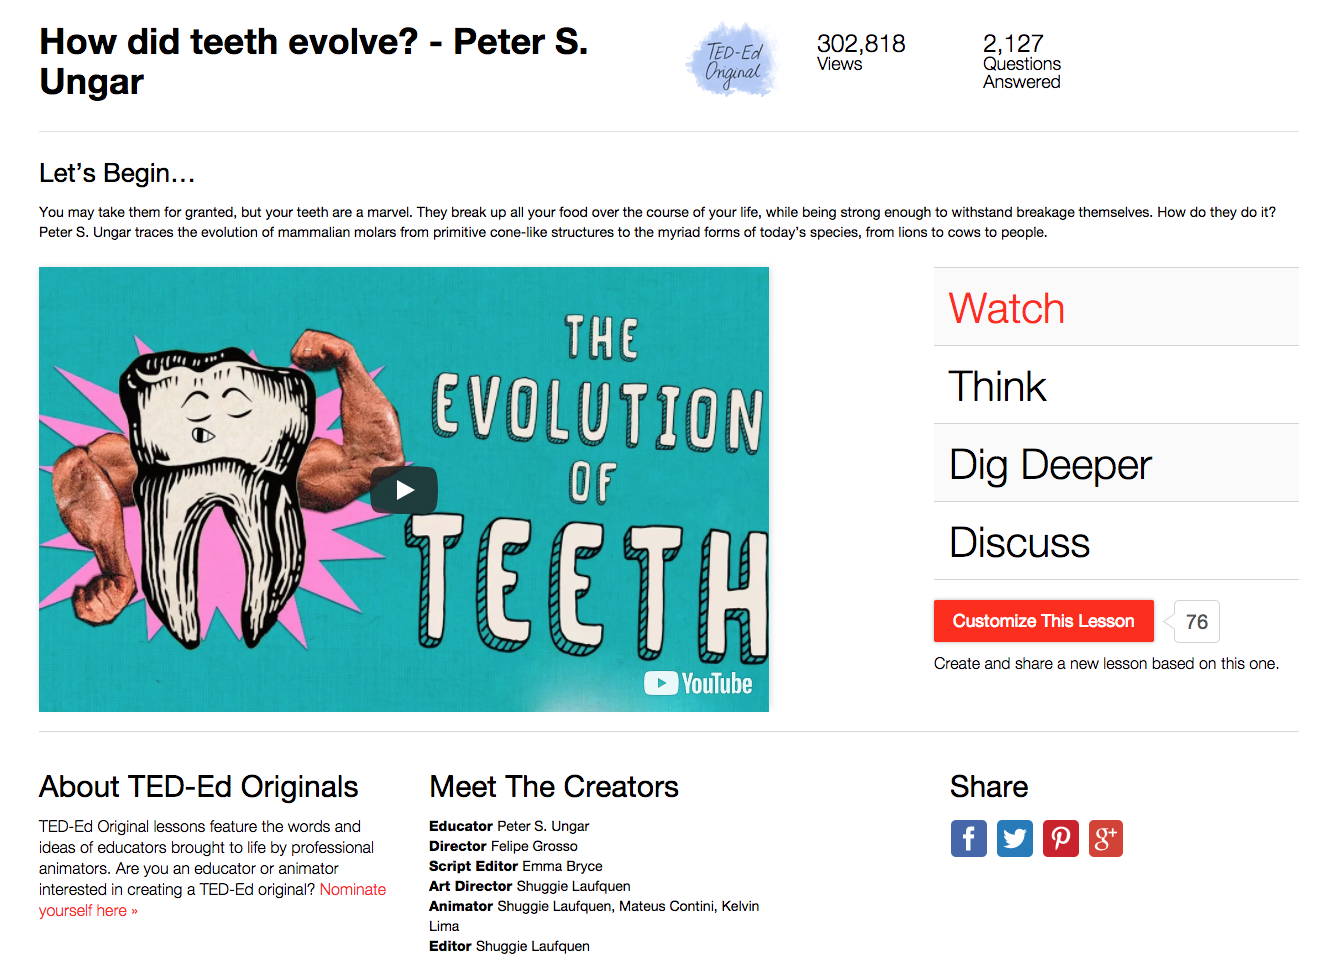 How Did Teeth Evolve? Video